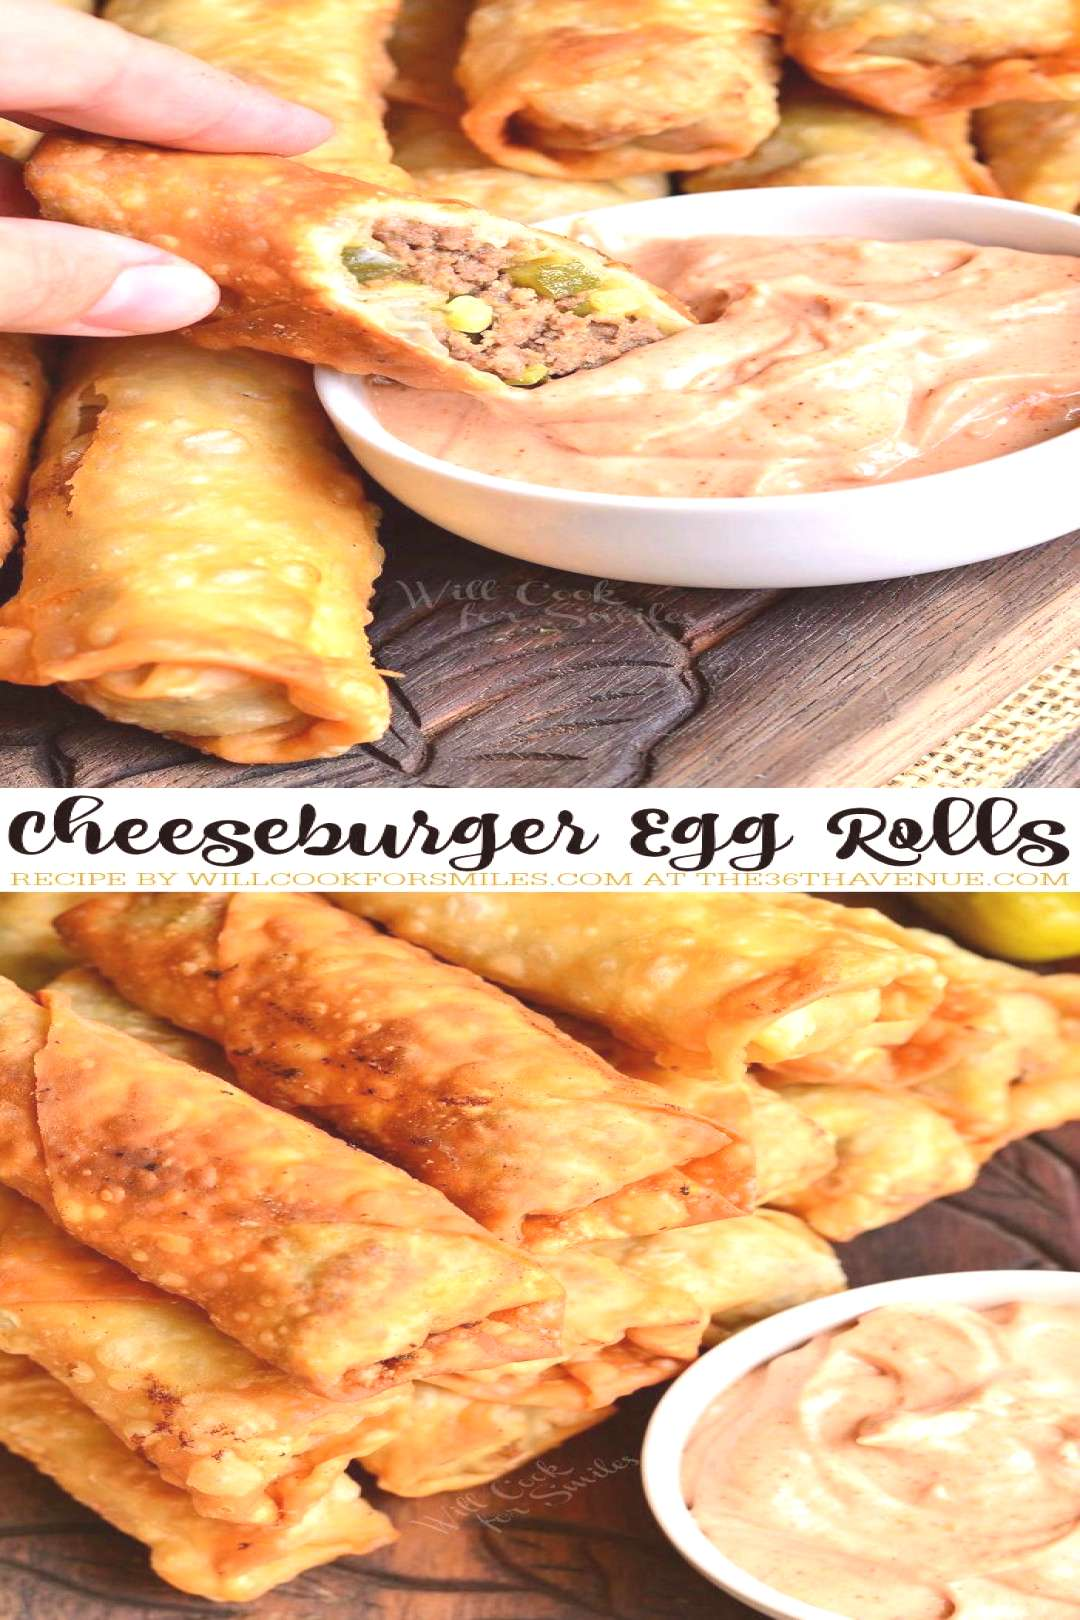 Easy Recipes - Cheeseburgers and Egg Rolls together are an AMAZING combination. These easy egg roll